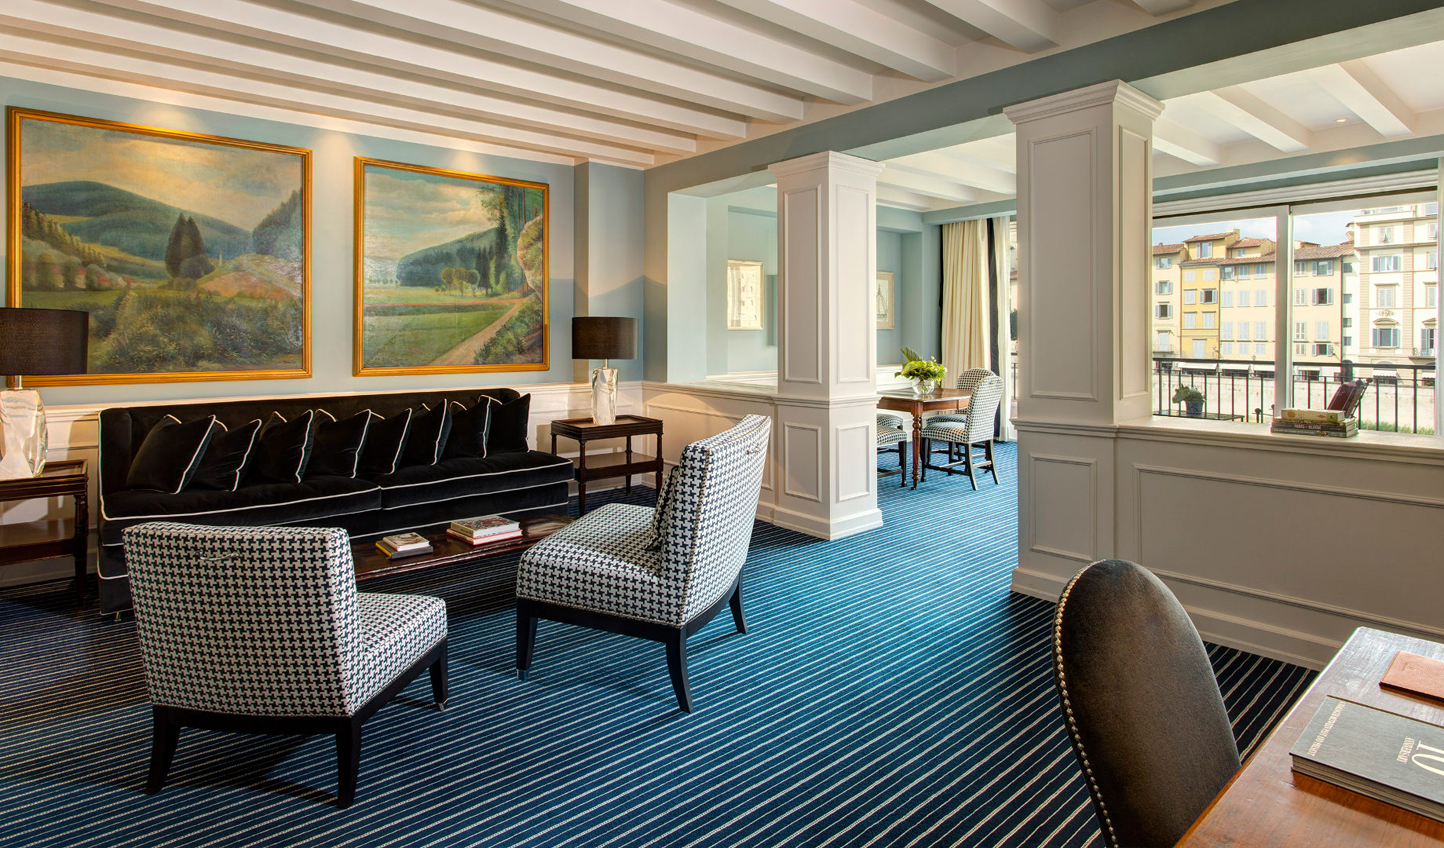 Penchant for Picasso? Check into the Picasso Suite